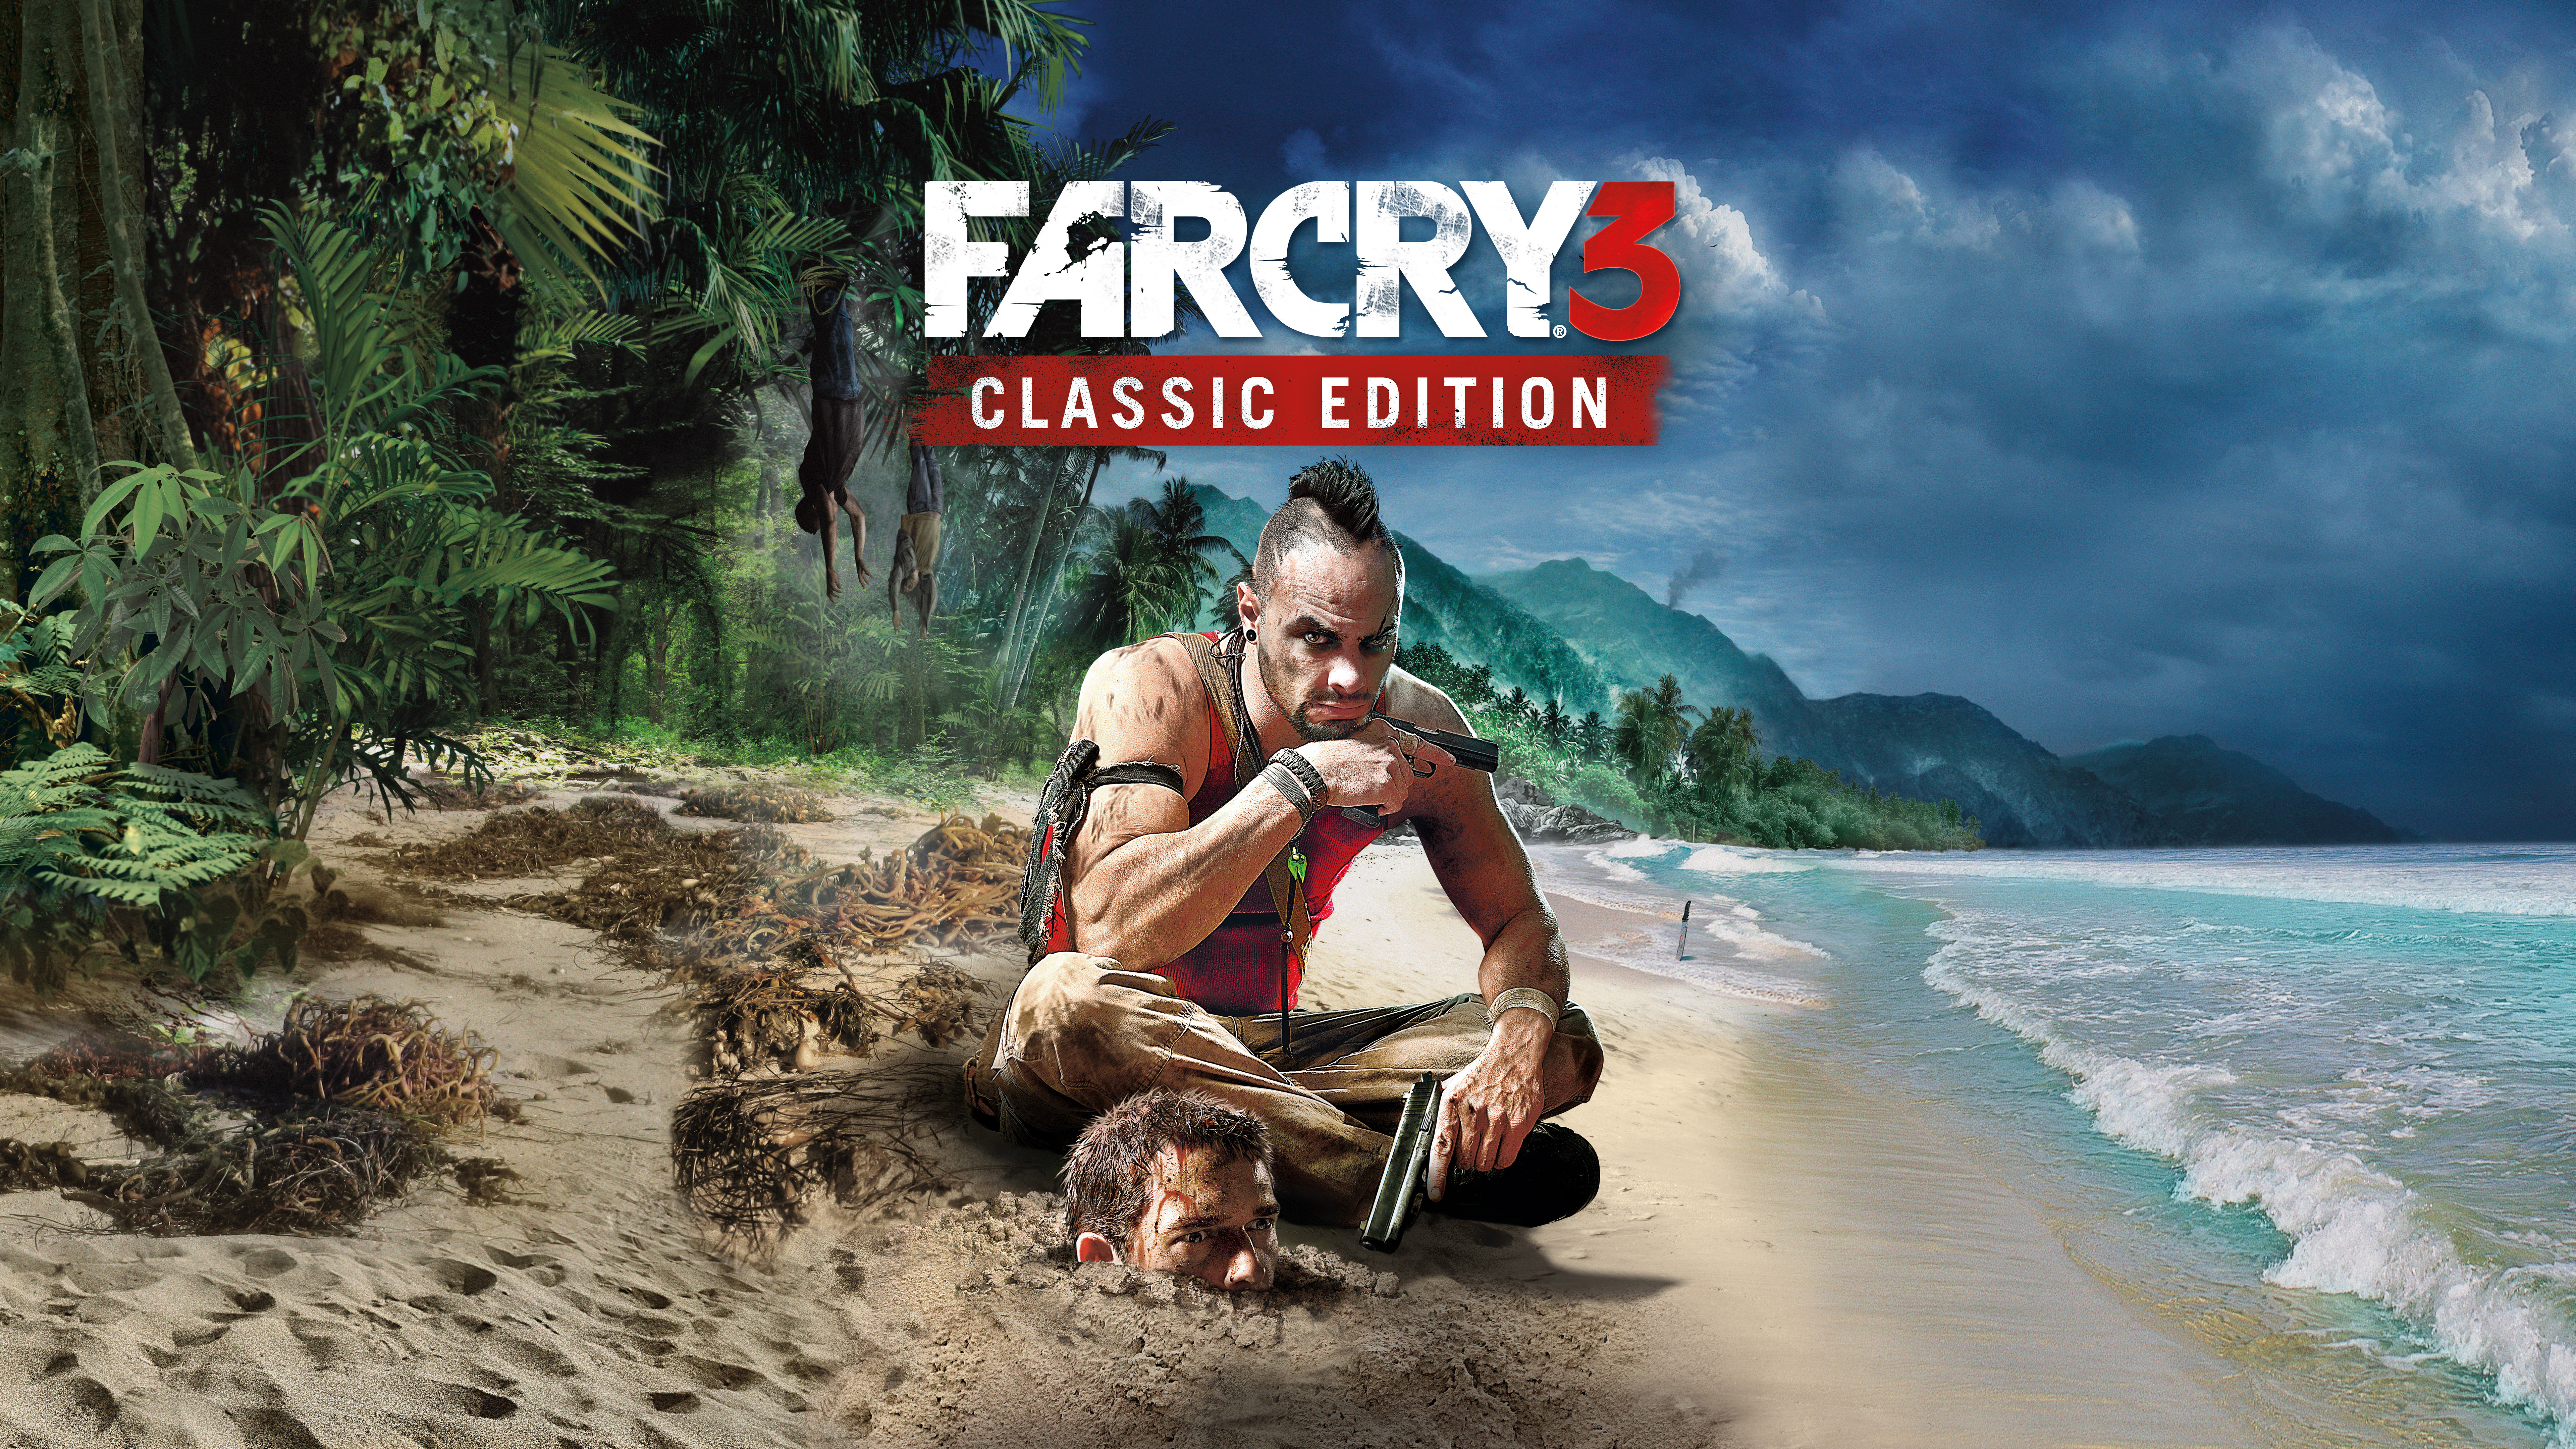 7680x4320 Far Cry 3 8k 8k Hd 4k Wallpapers Images Backgrounds